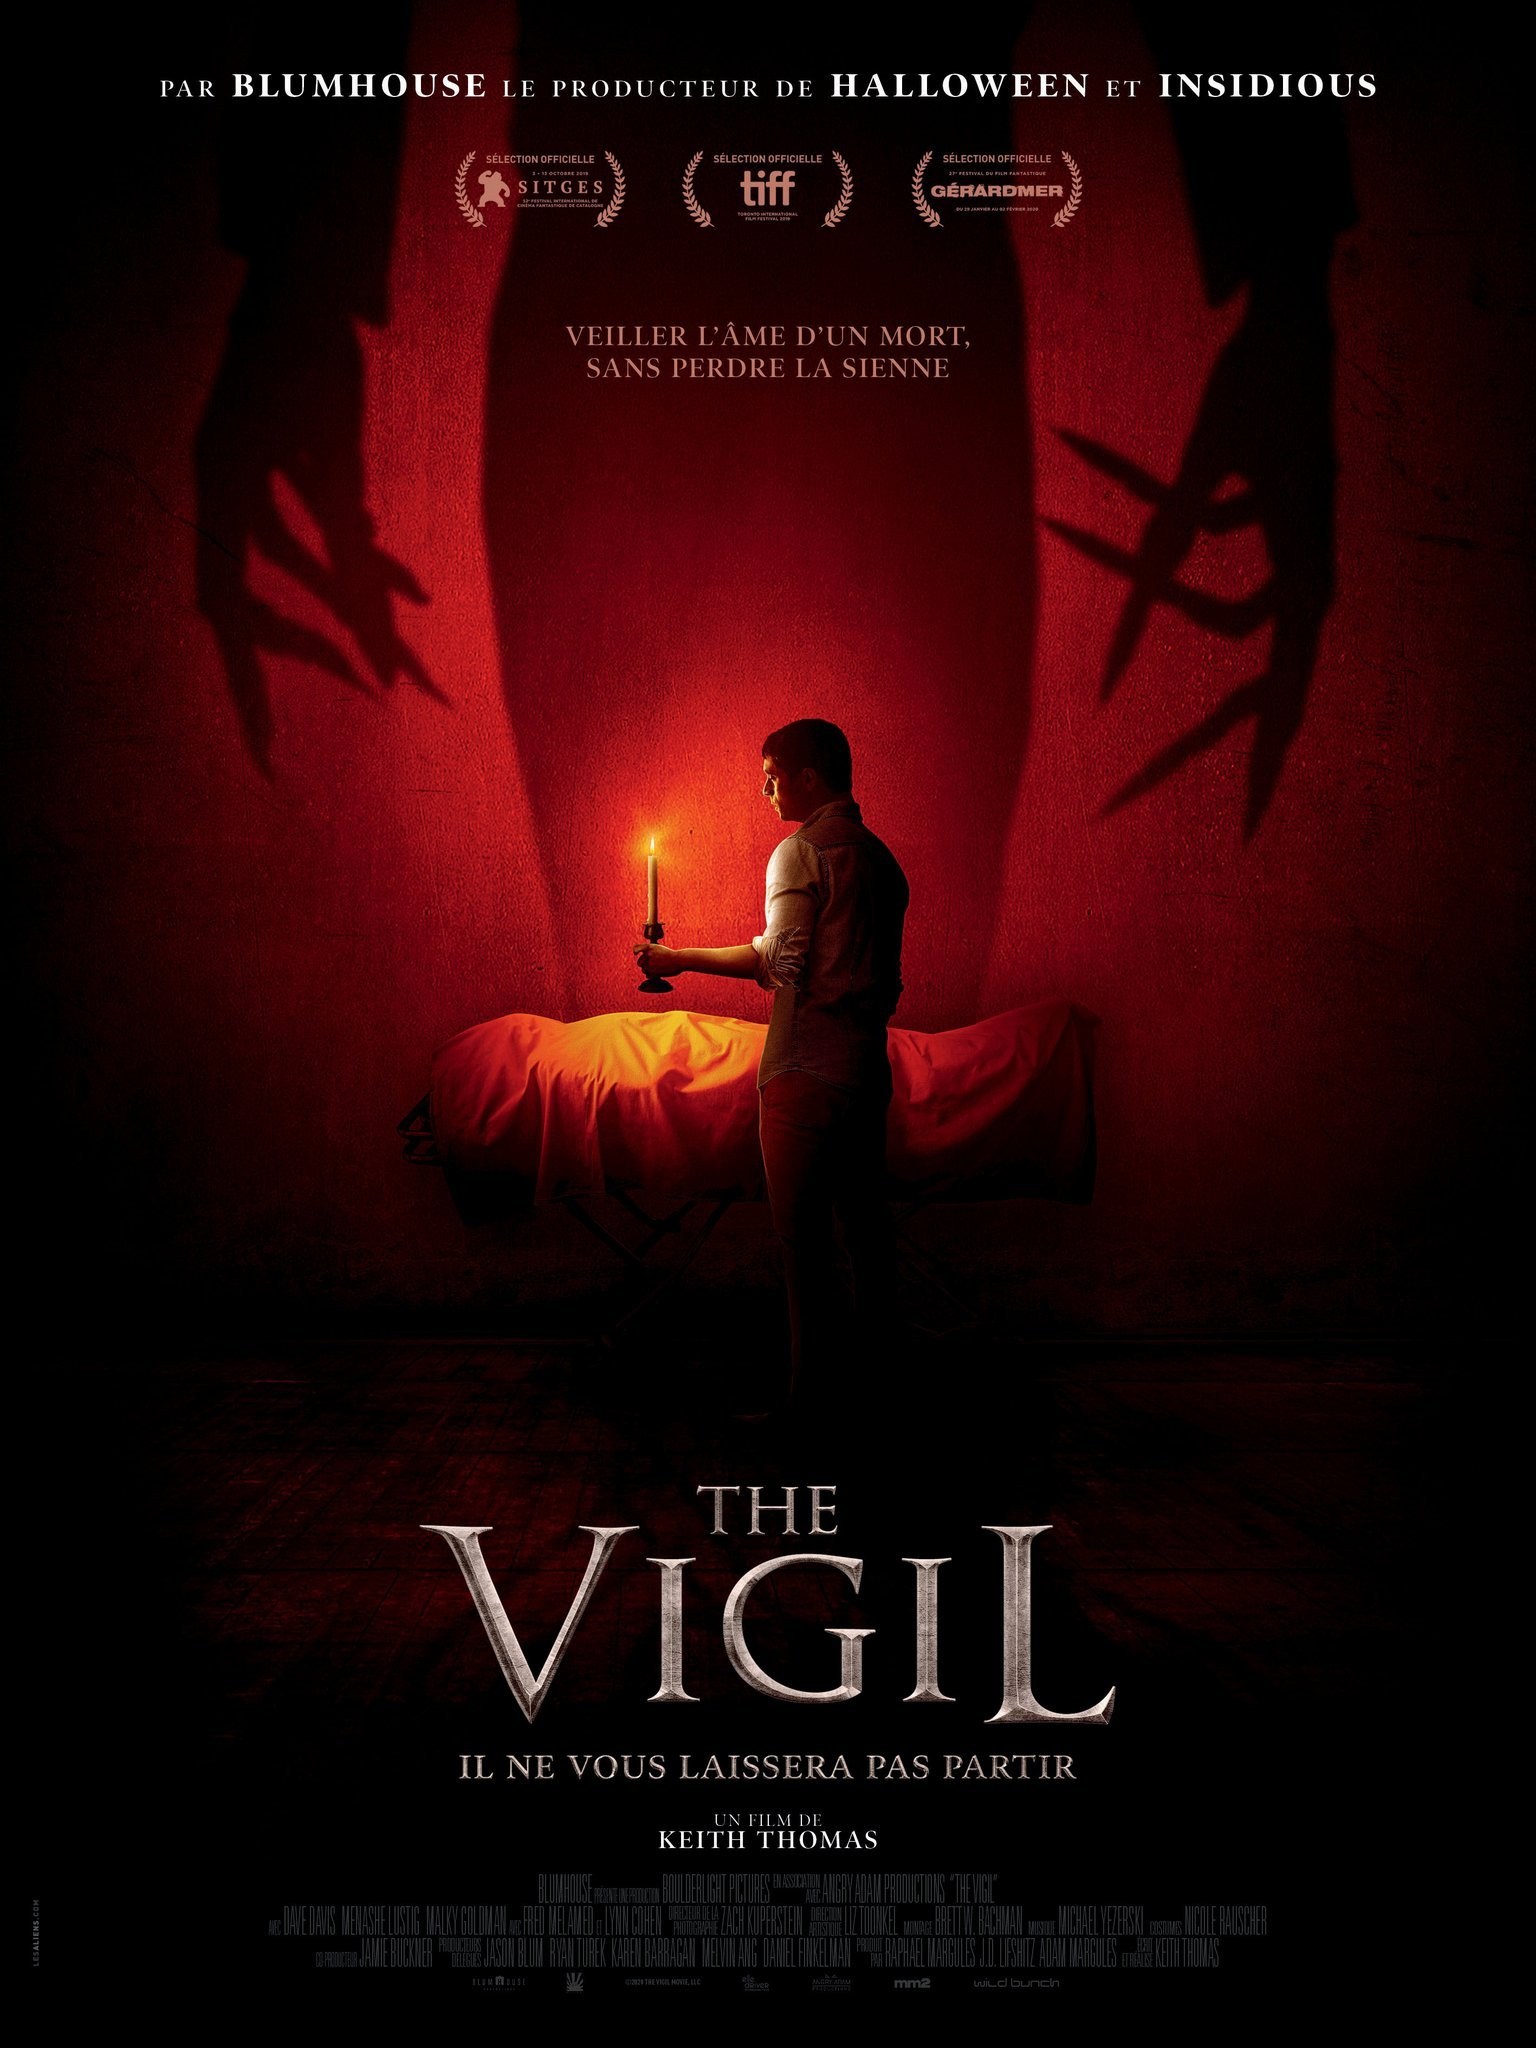 The Vigil (2020) poster image